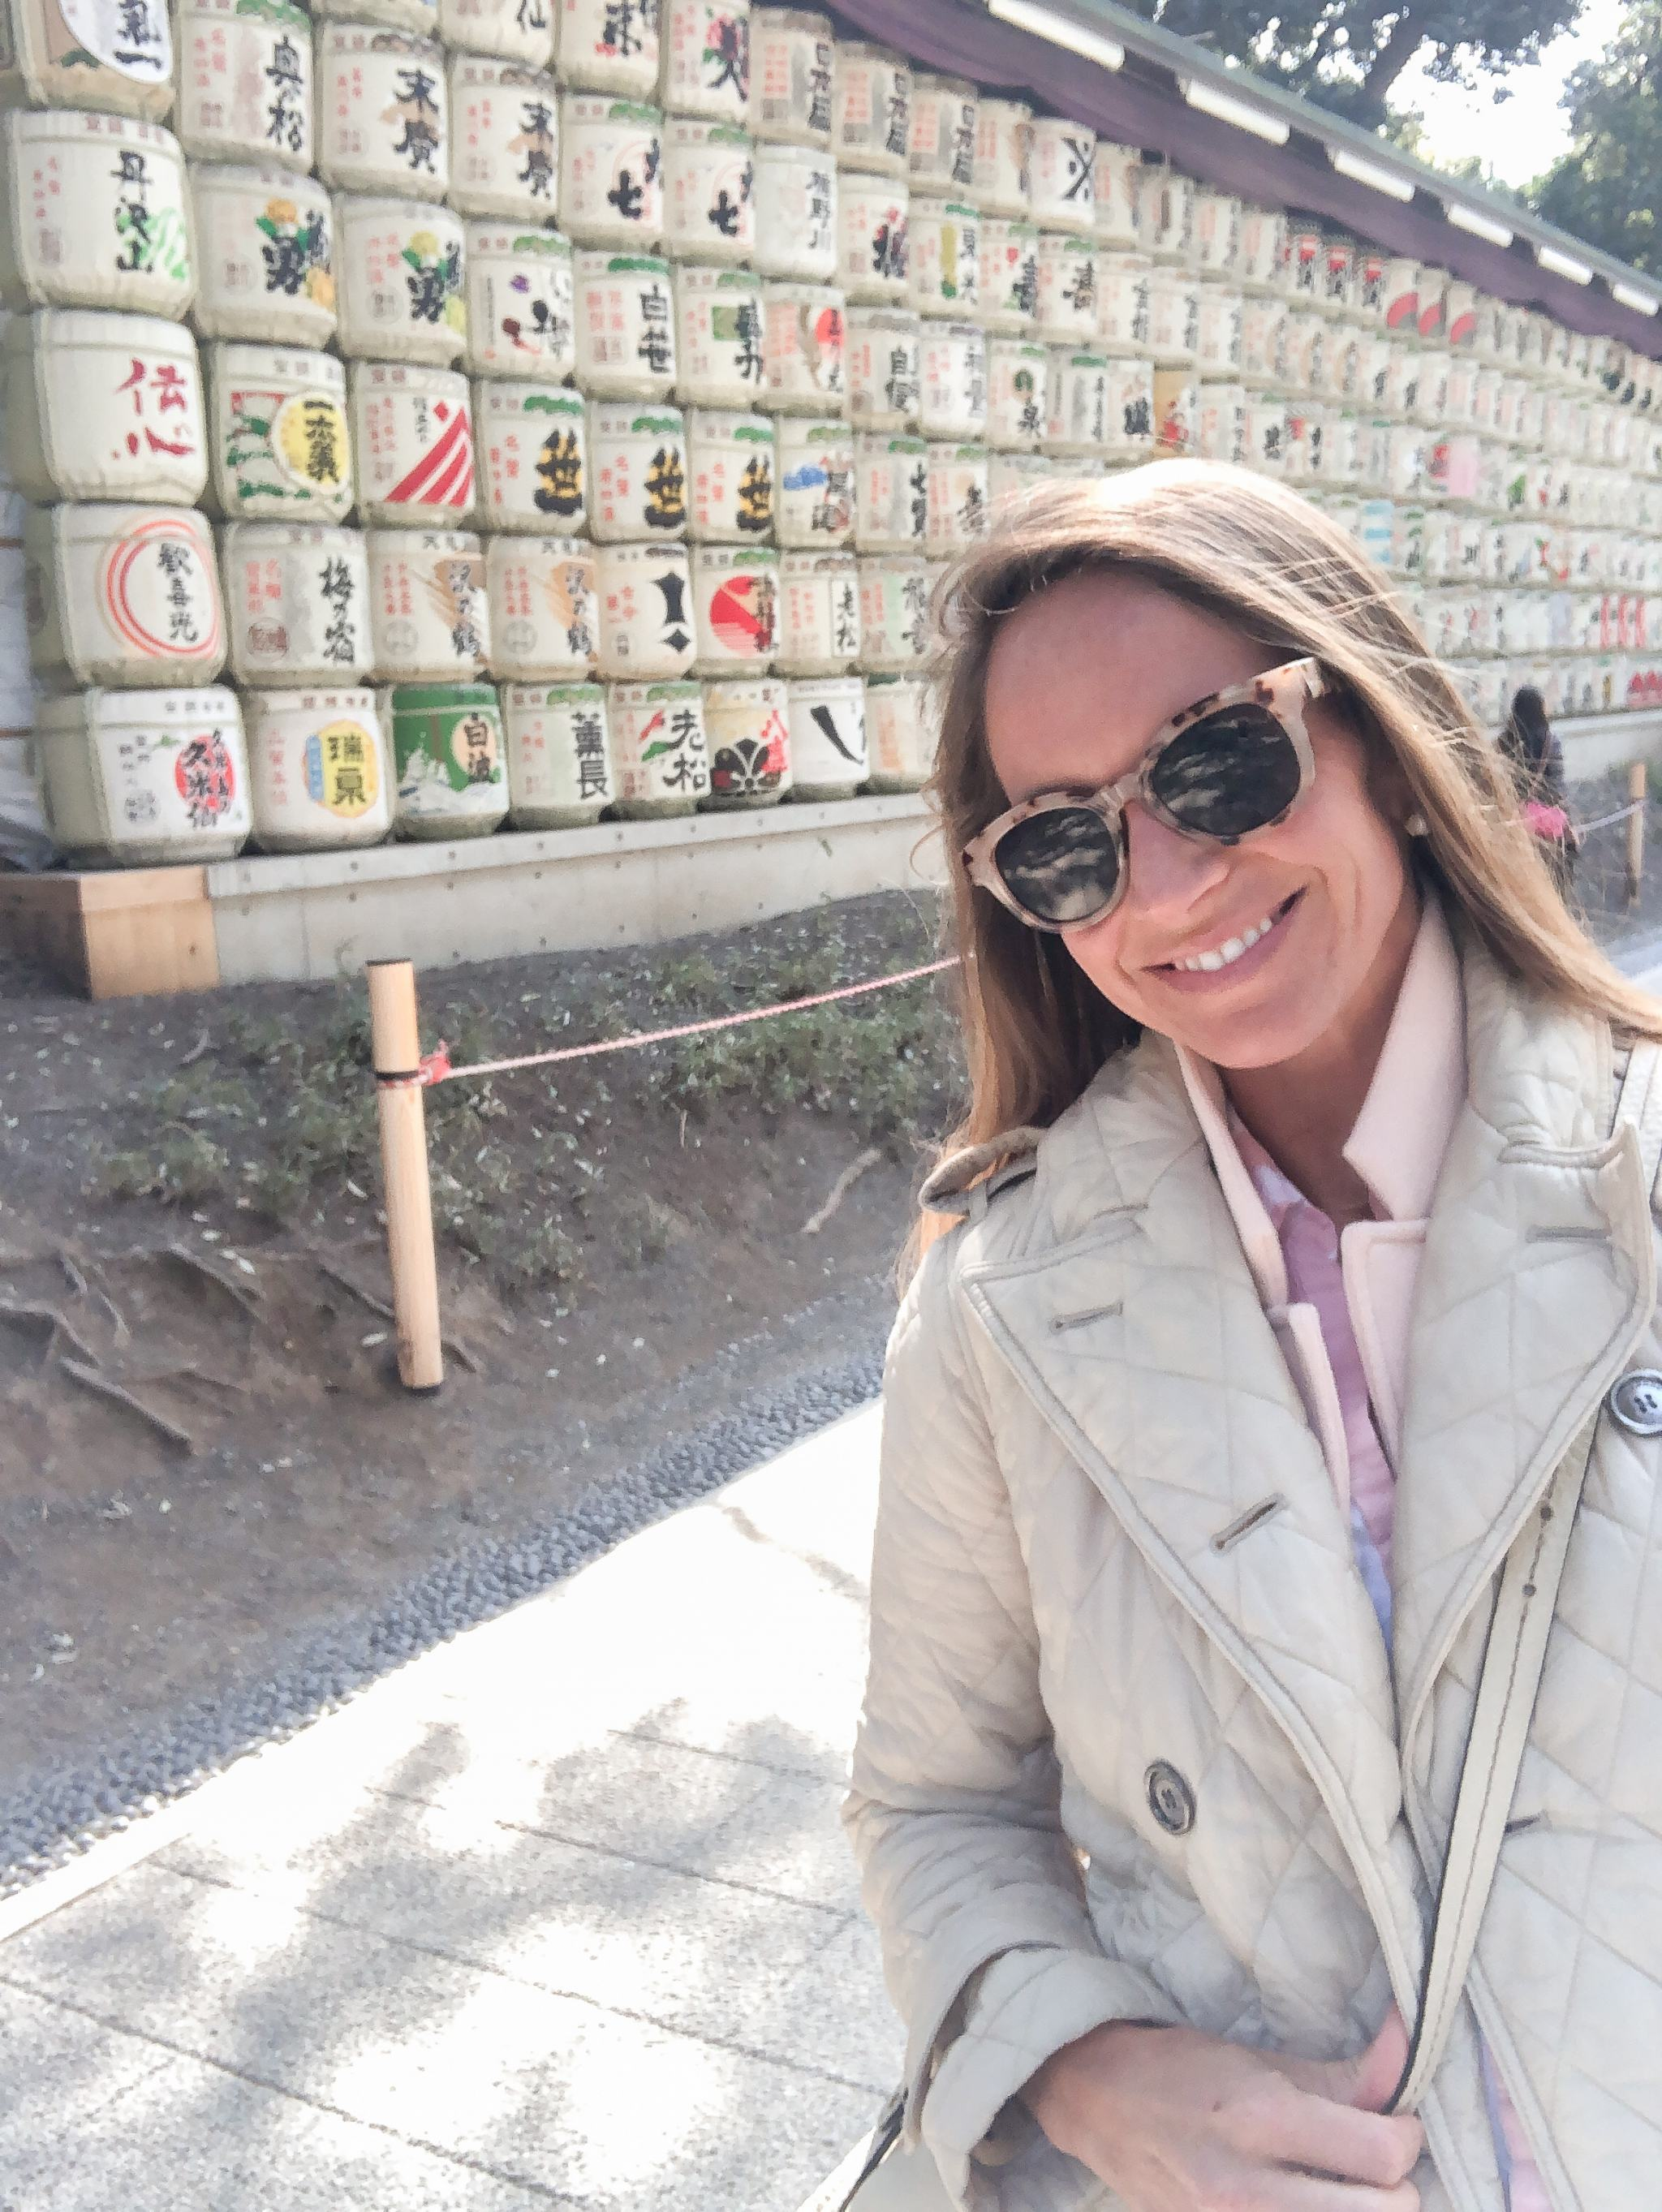 Tokyo - traveling in Tokyo - what to see in Japan - Meguro River Cherry Blossoms - yoyogi park - meiji shrine